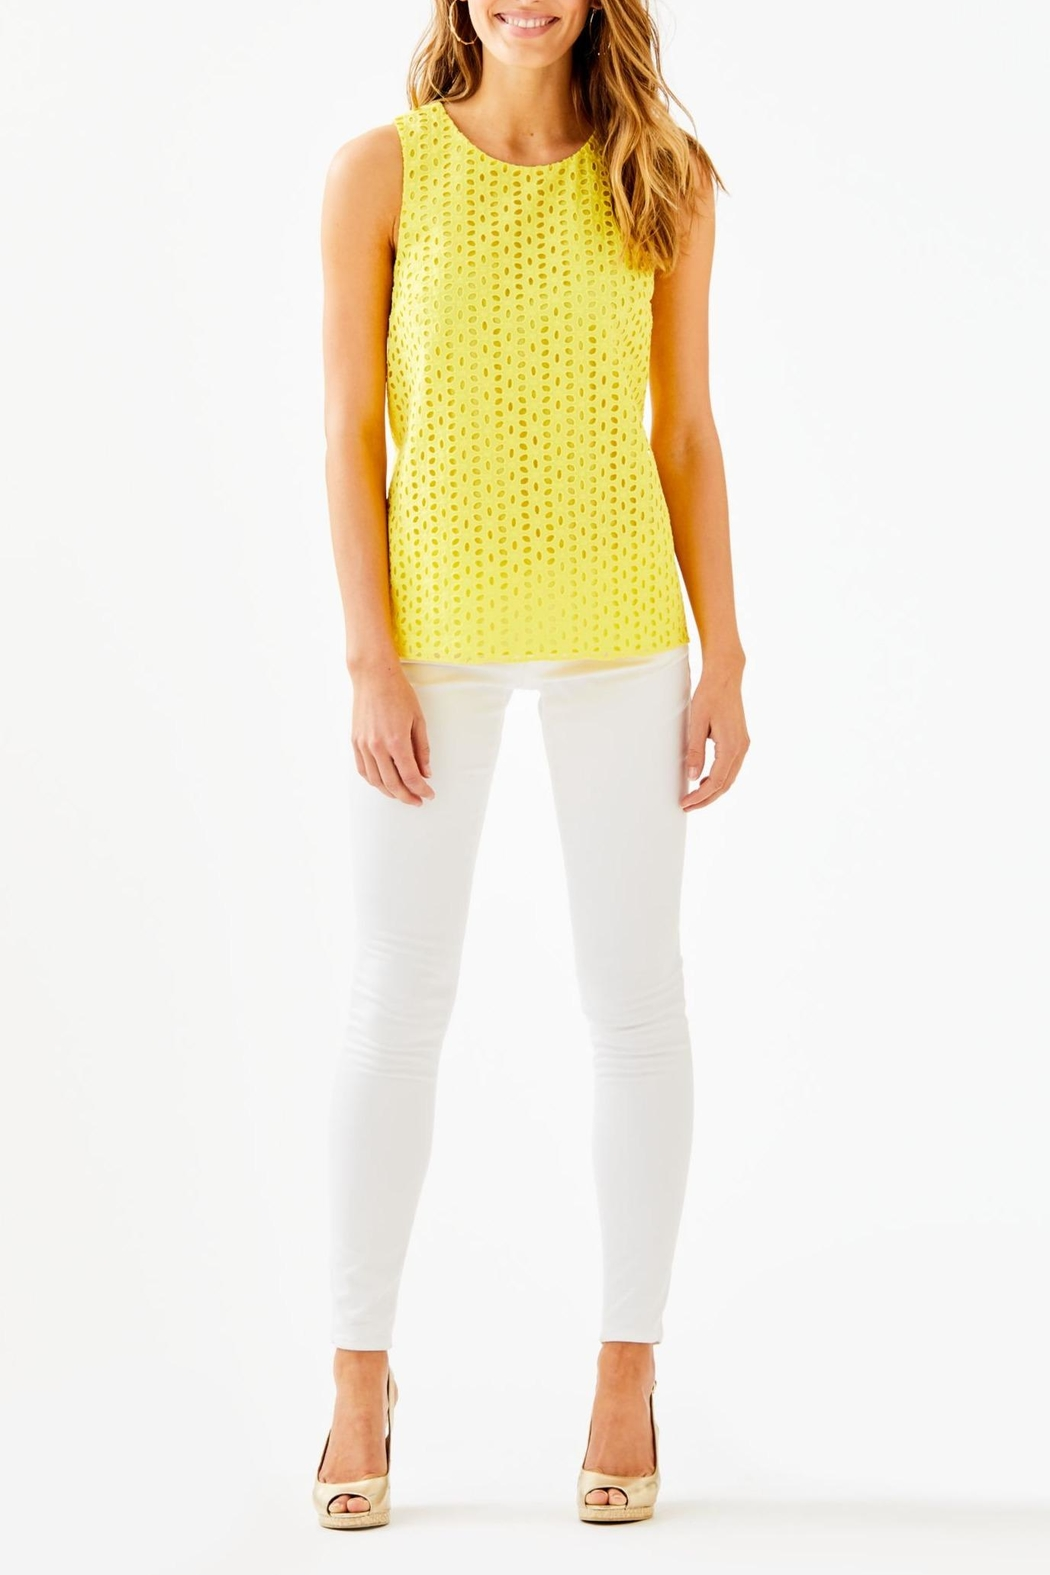 Lilly Pulitzer Iona Top - Side Cropped Image